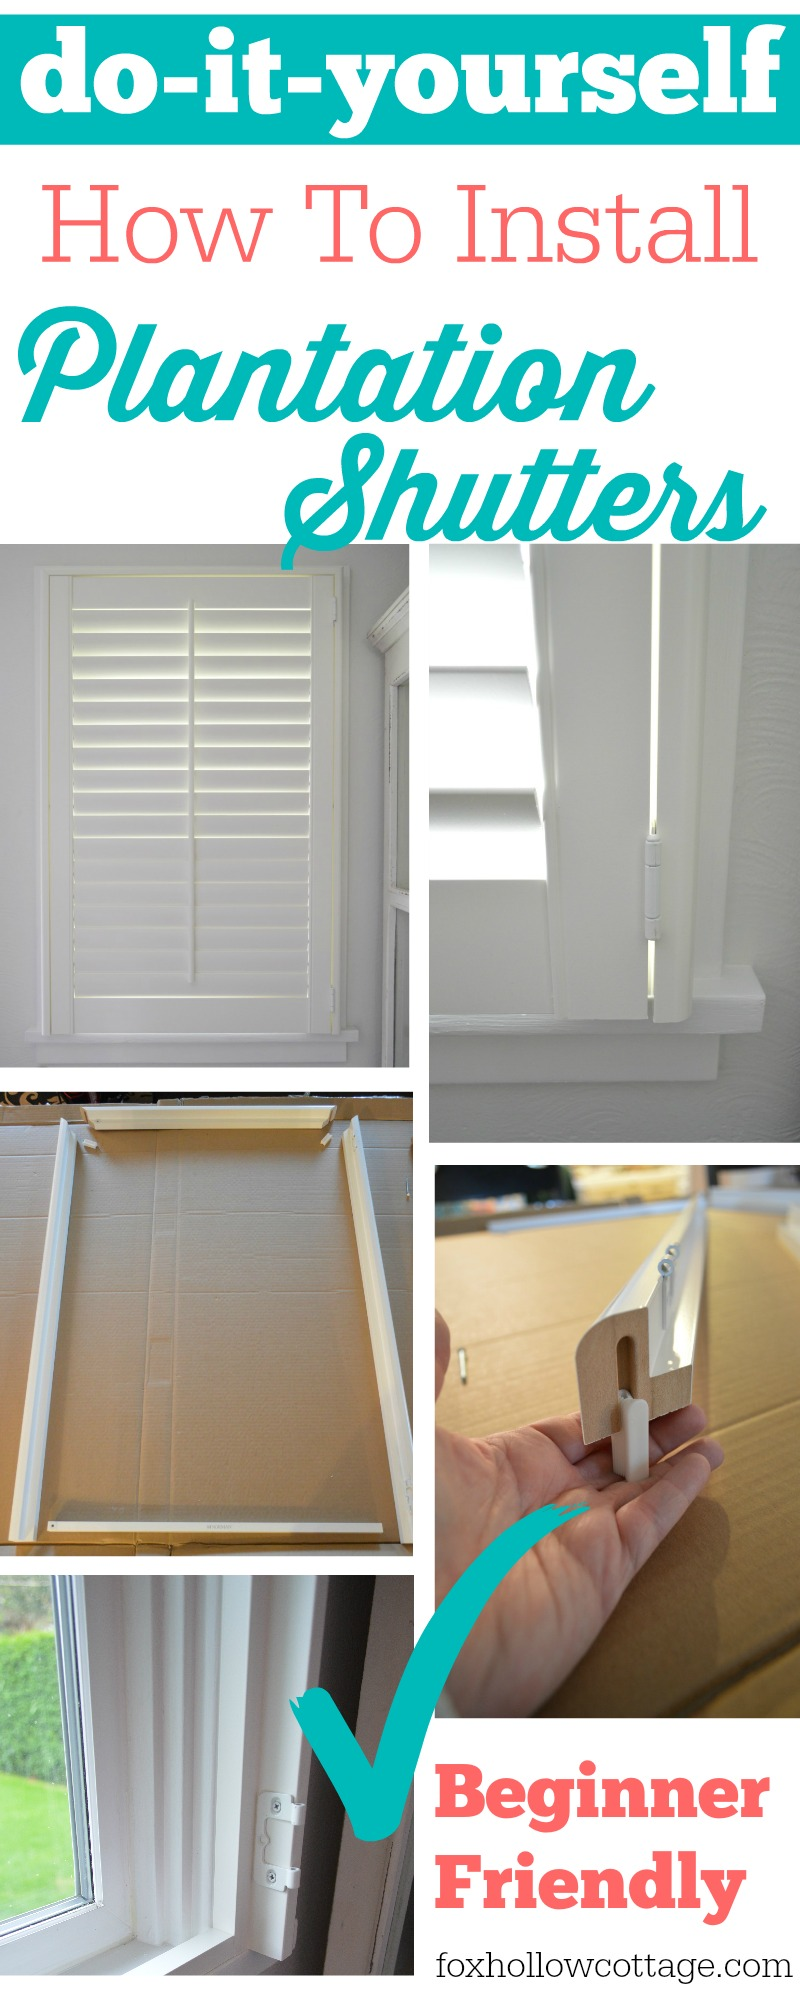 Do It Yourself   How To Install Plantation Shutters